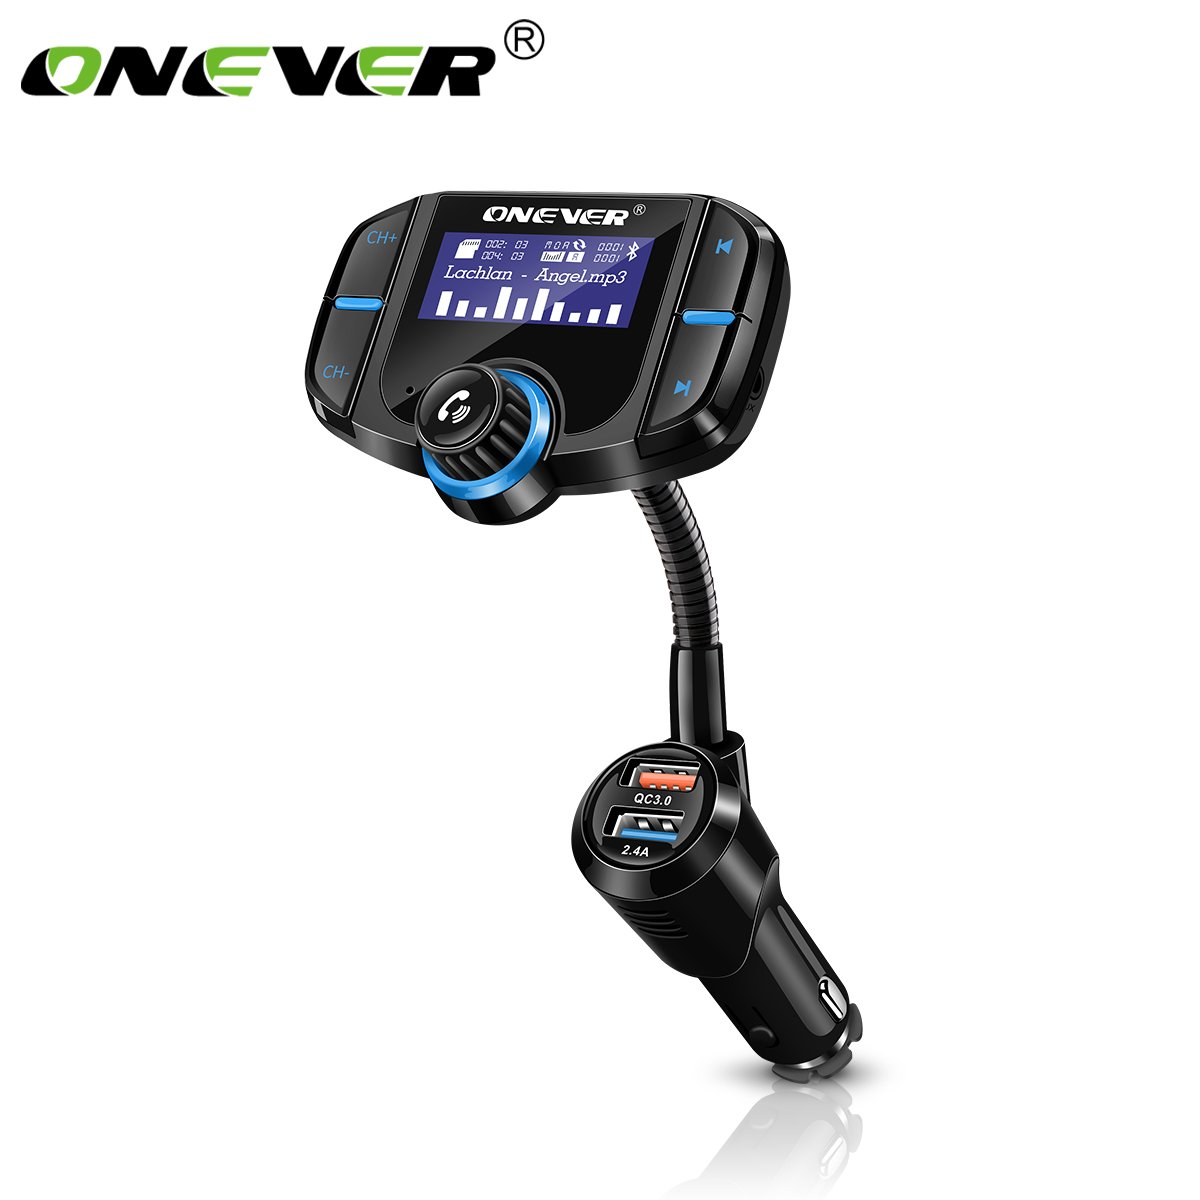 DDSKY ONEVER BT70 Rotatable Bluetooth Car Kit FM Transmitter MP3 Player Modulator with QC3.0 Dual USB Car Charger Qualcomm Fast Charge Support for SIRI/TF Card/AUX in/Out with Voltmeter DC 12/24V